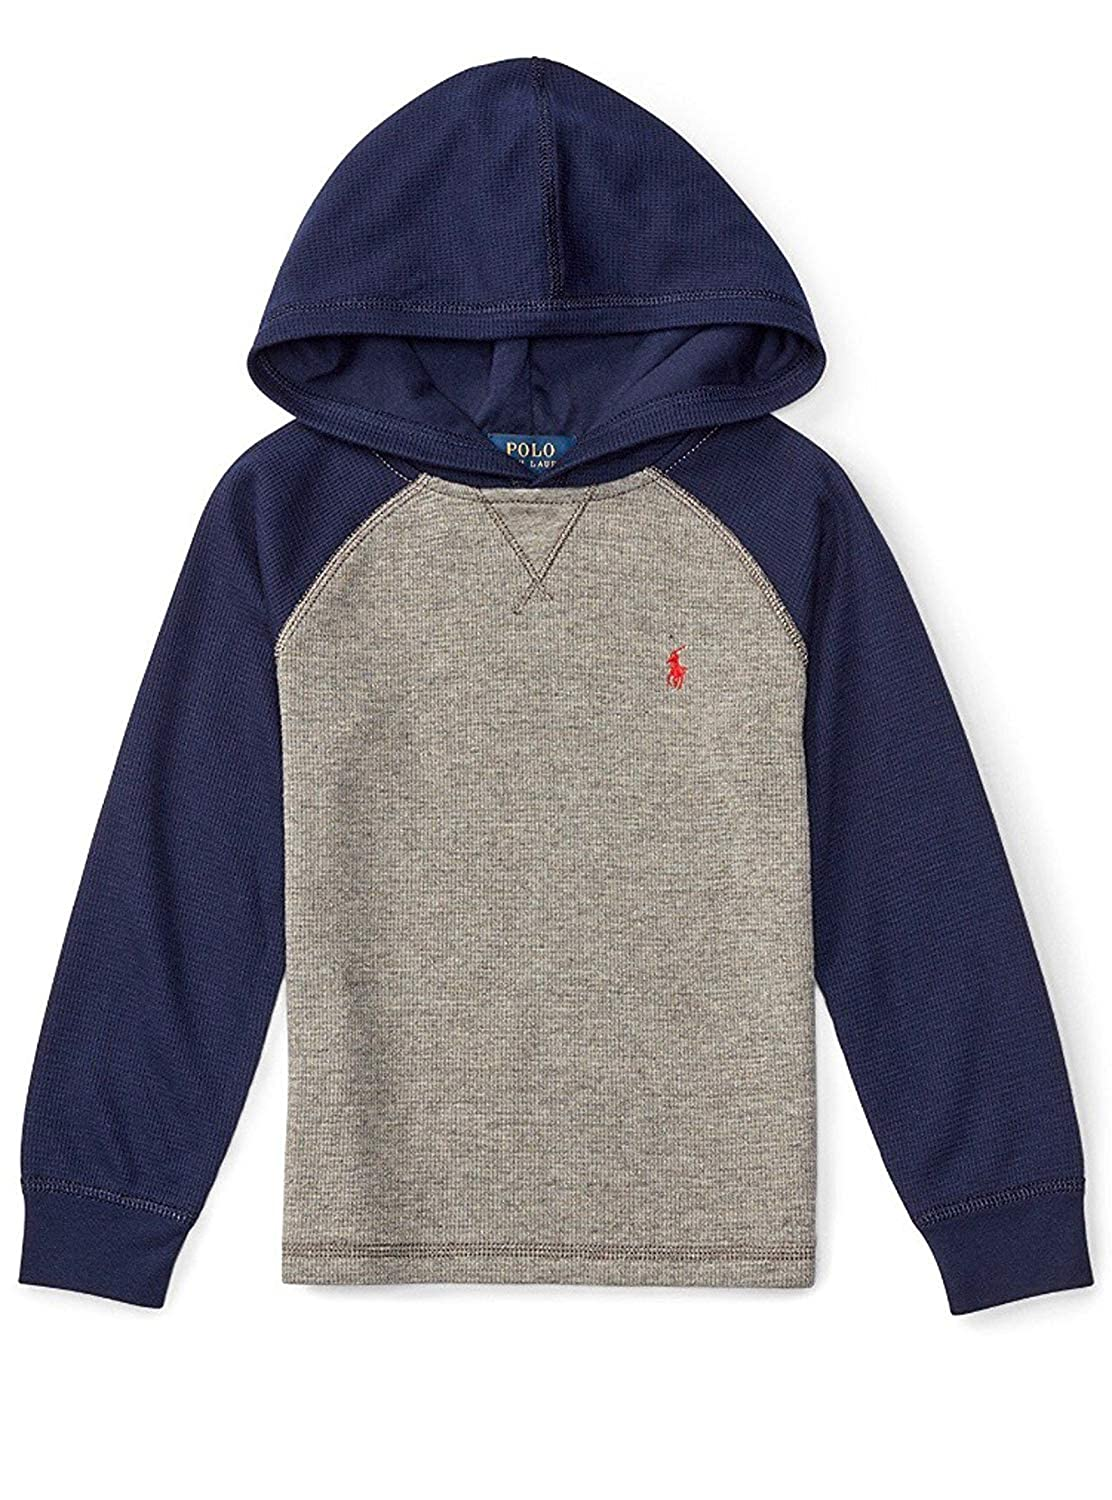 Ralph Lauren Boys Cotton Blend Hoodie